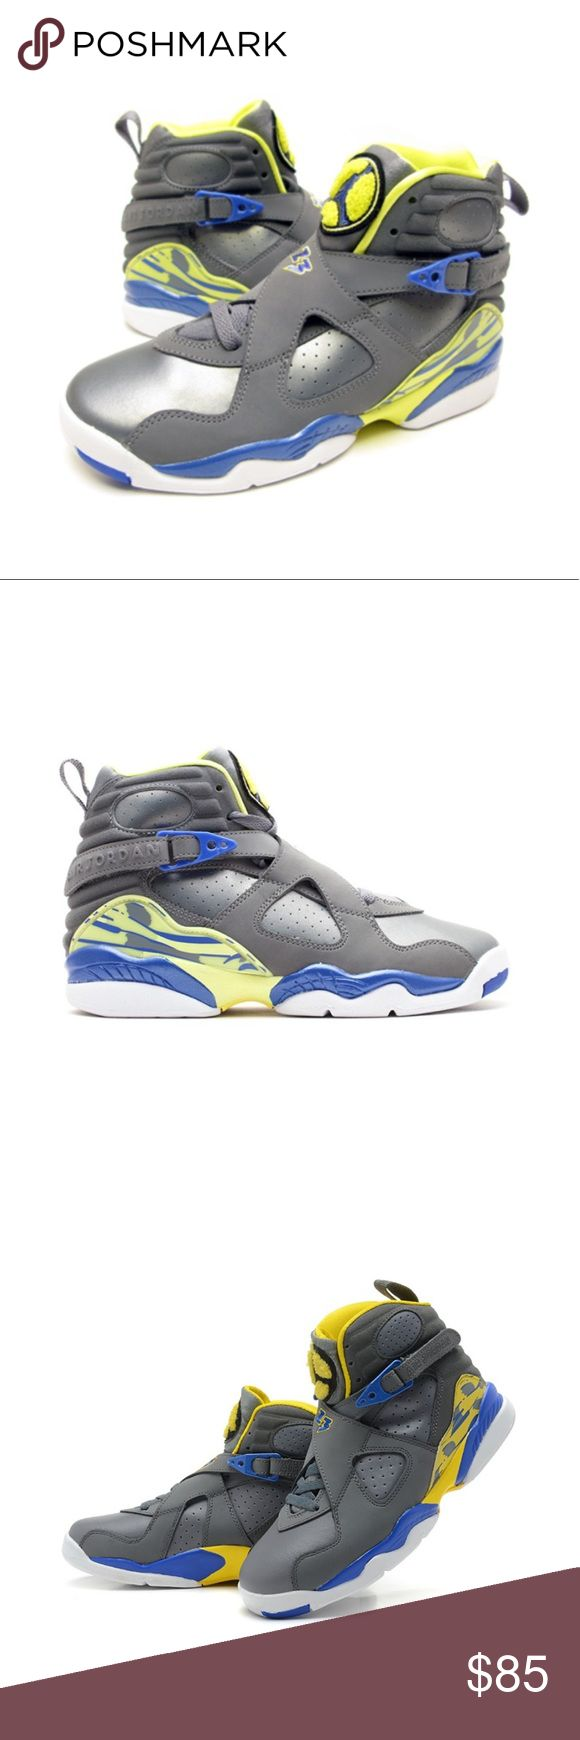 AIR JORDAN RETRO 8! This product had been purchased at Footlocker. Quality of this product is slightly used. Receipt and original box are not included. Air Jordan Shoes Sneakers